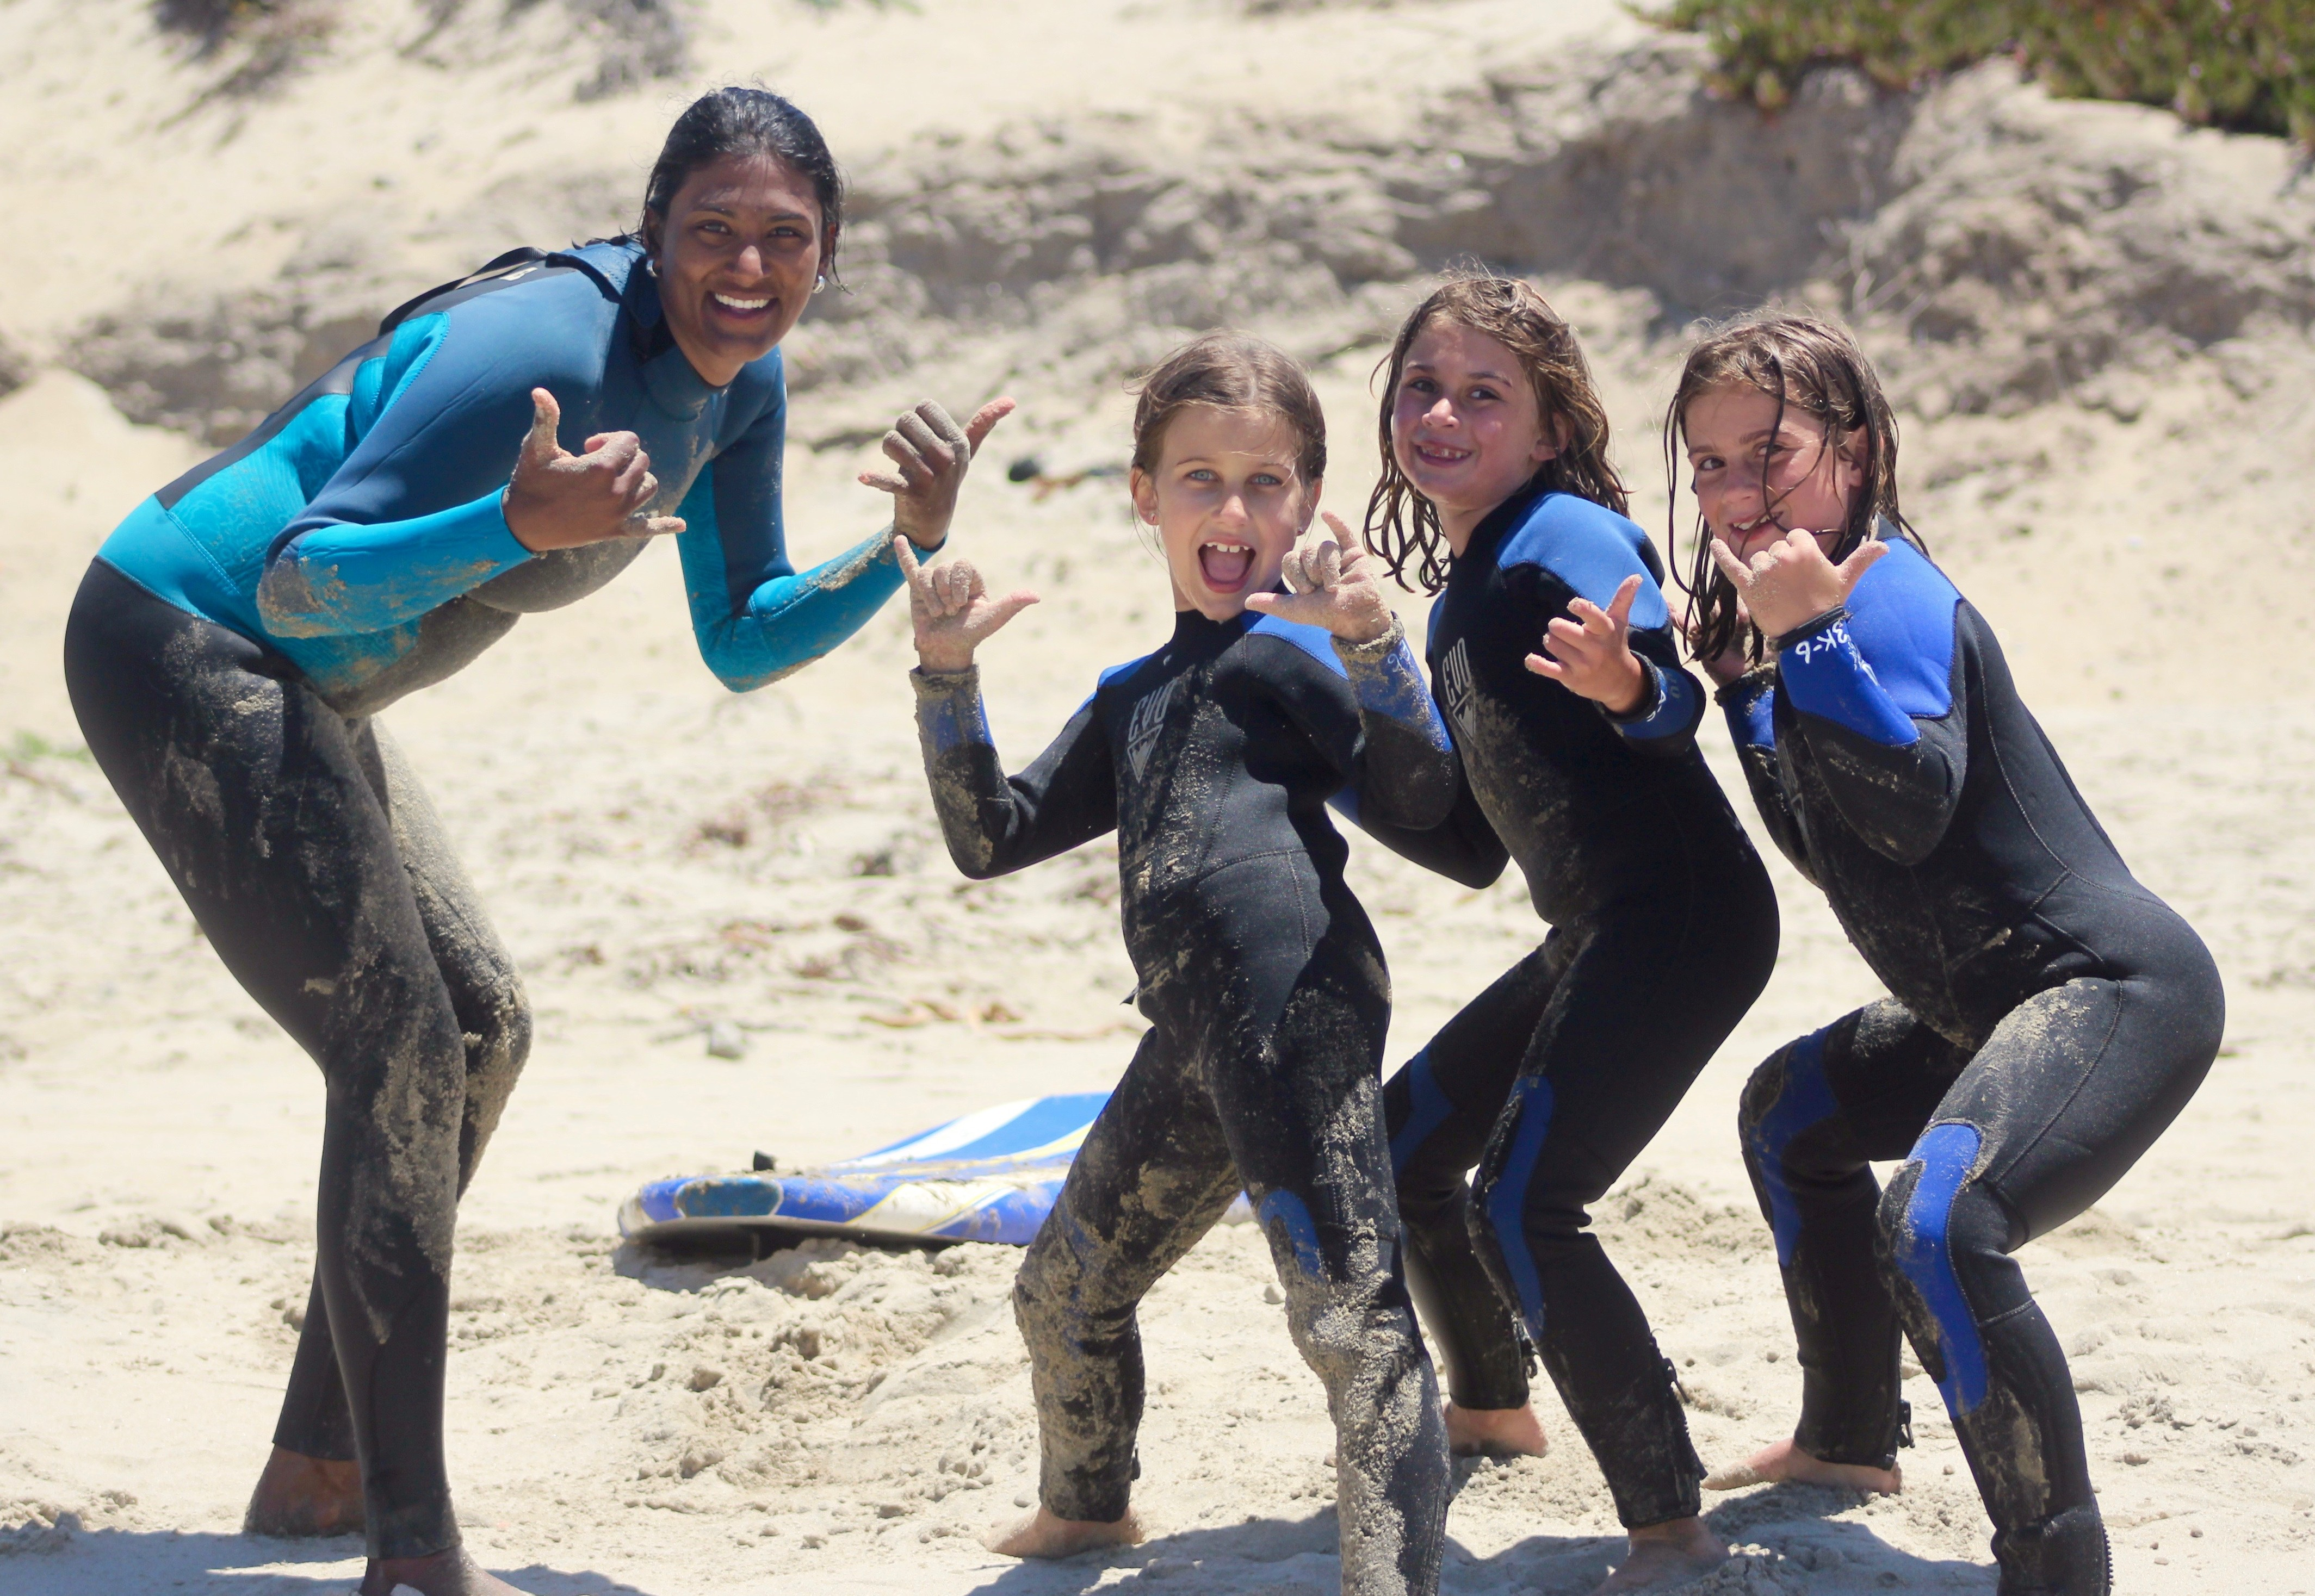 Campers in wetsuits posing with counselor